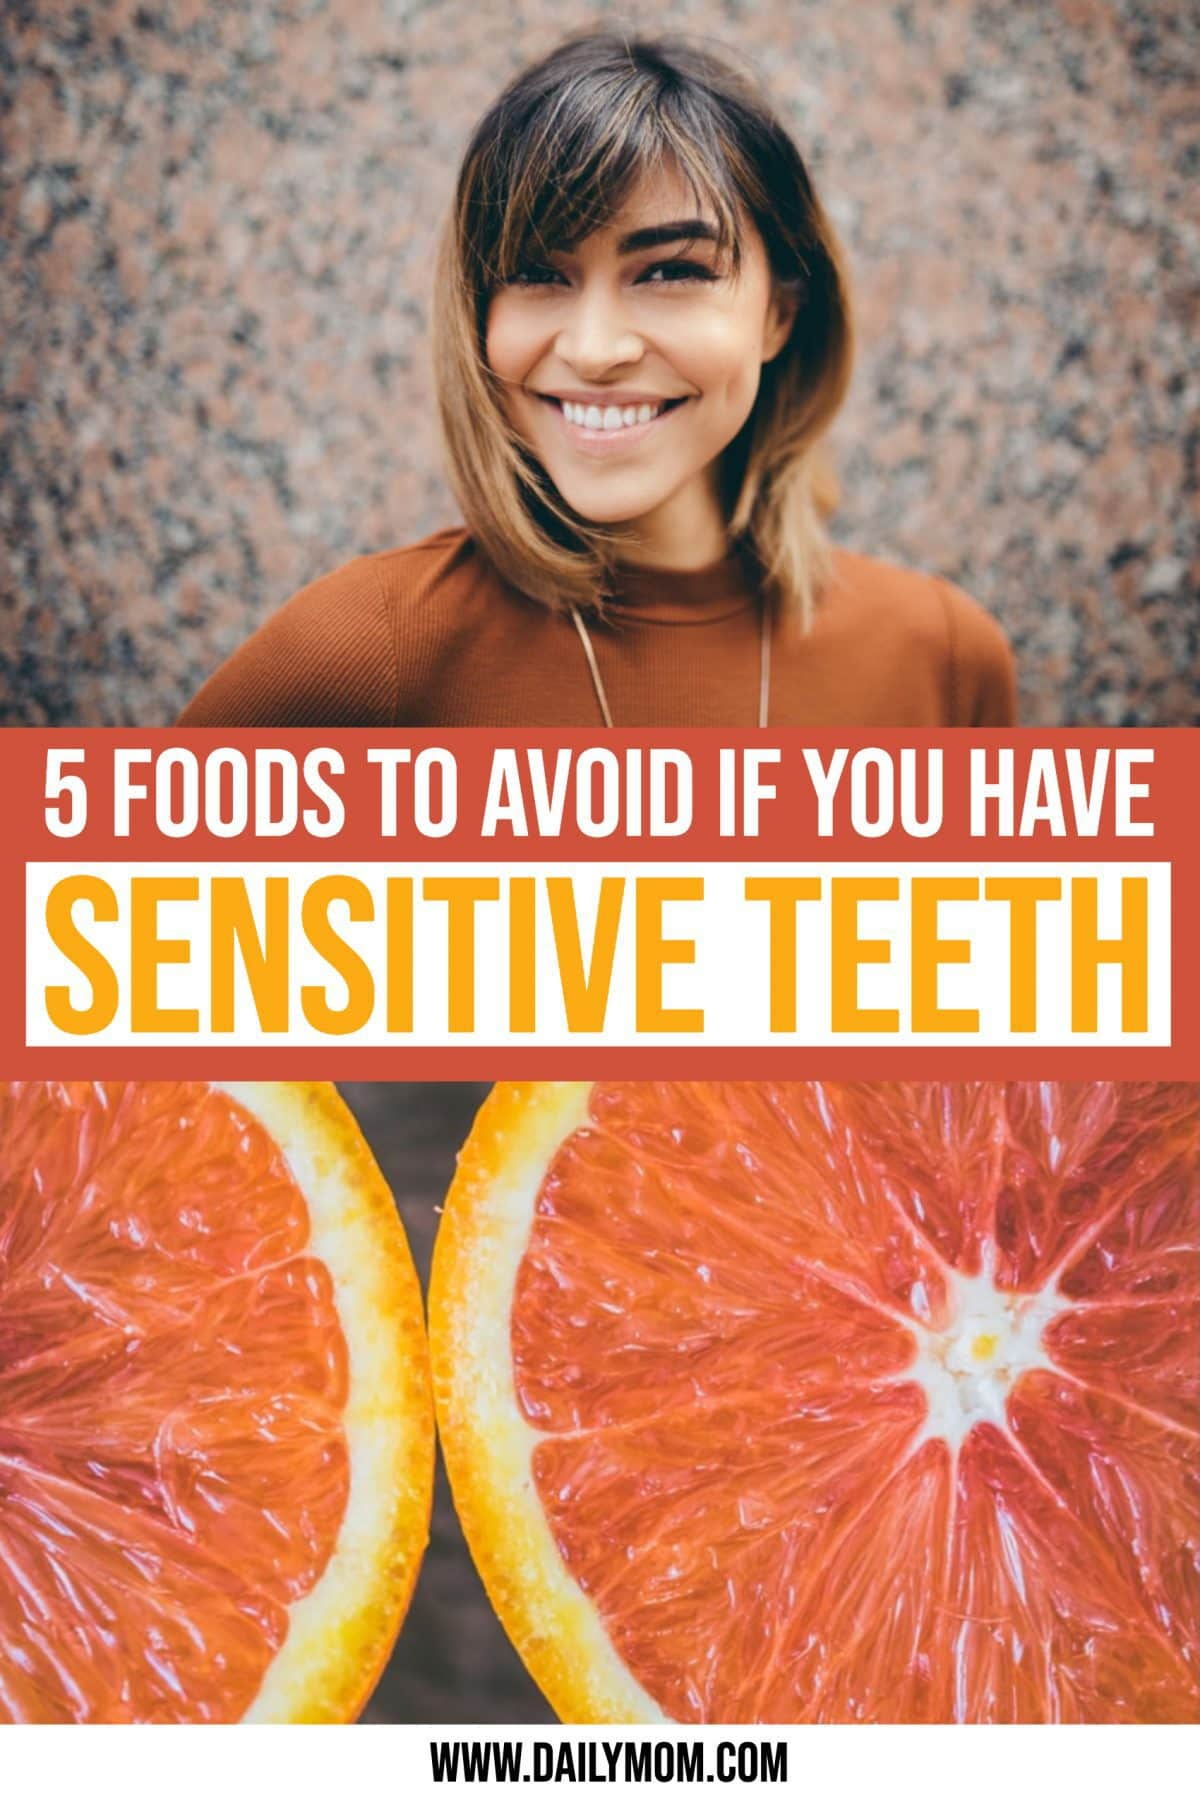 5 Foods To Avoid If You Have Sensitive Teeth